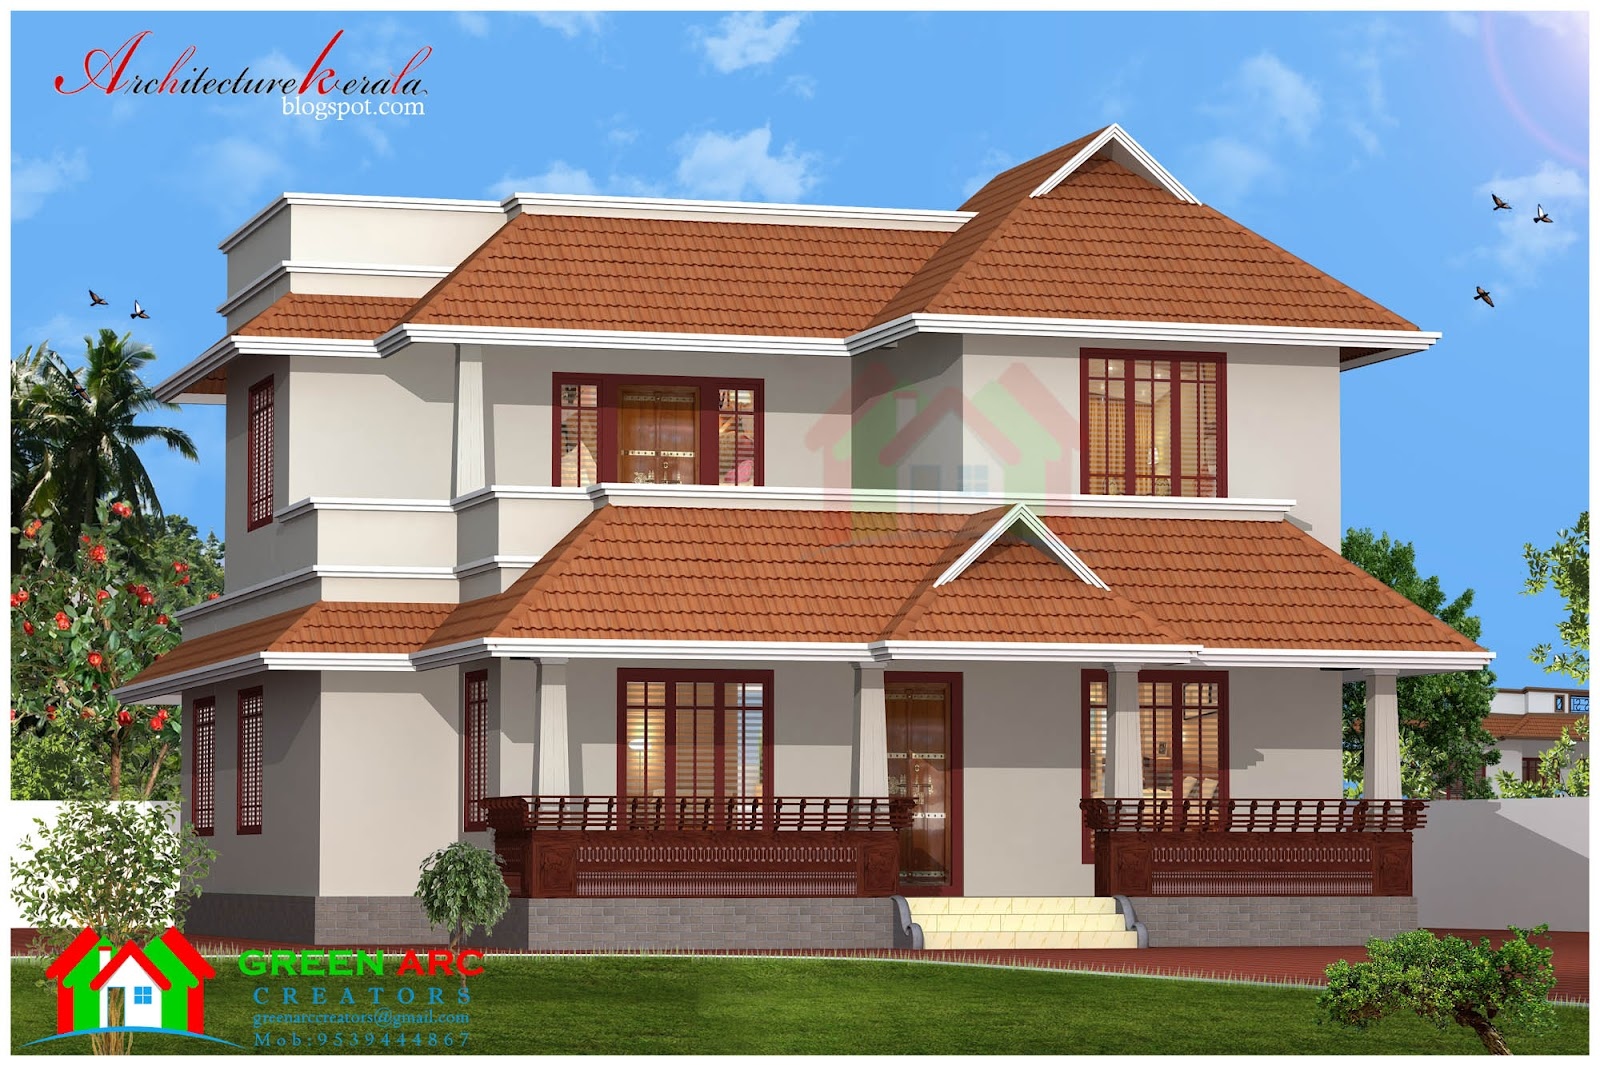 Architecture kerala traditional style kerala house plan for Kerala building elevation